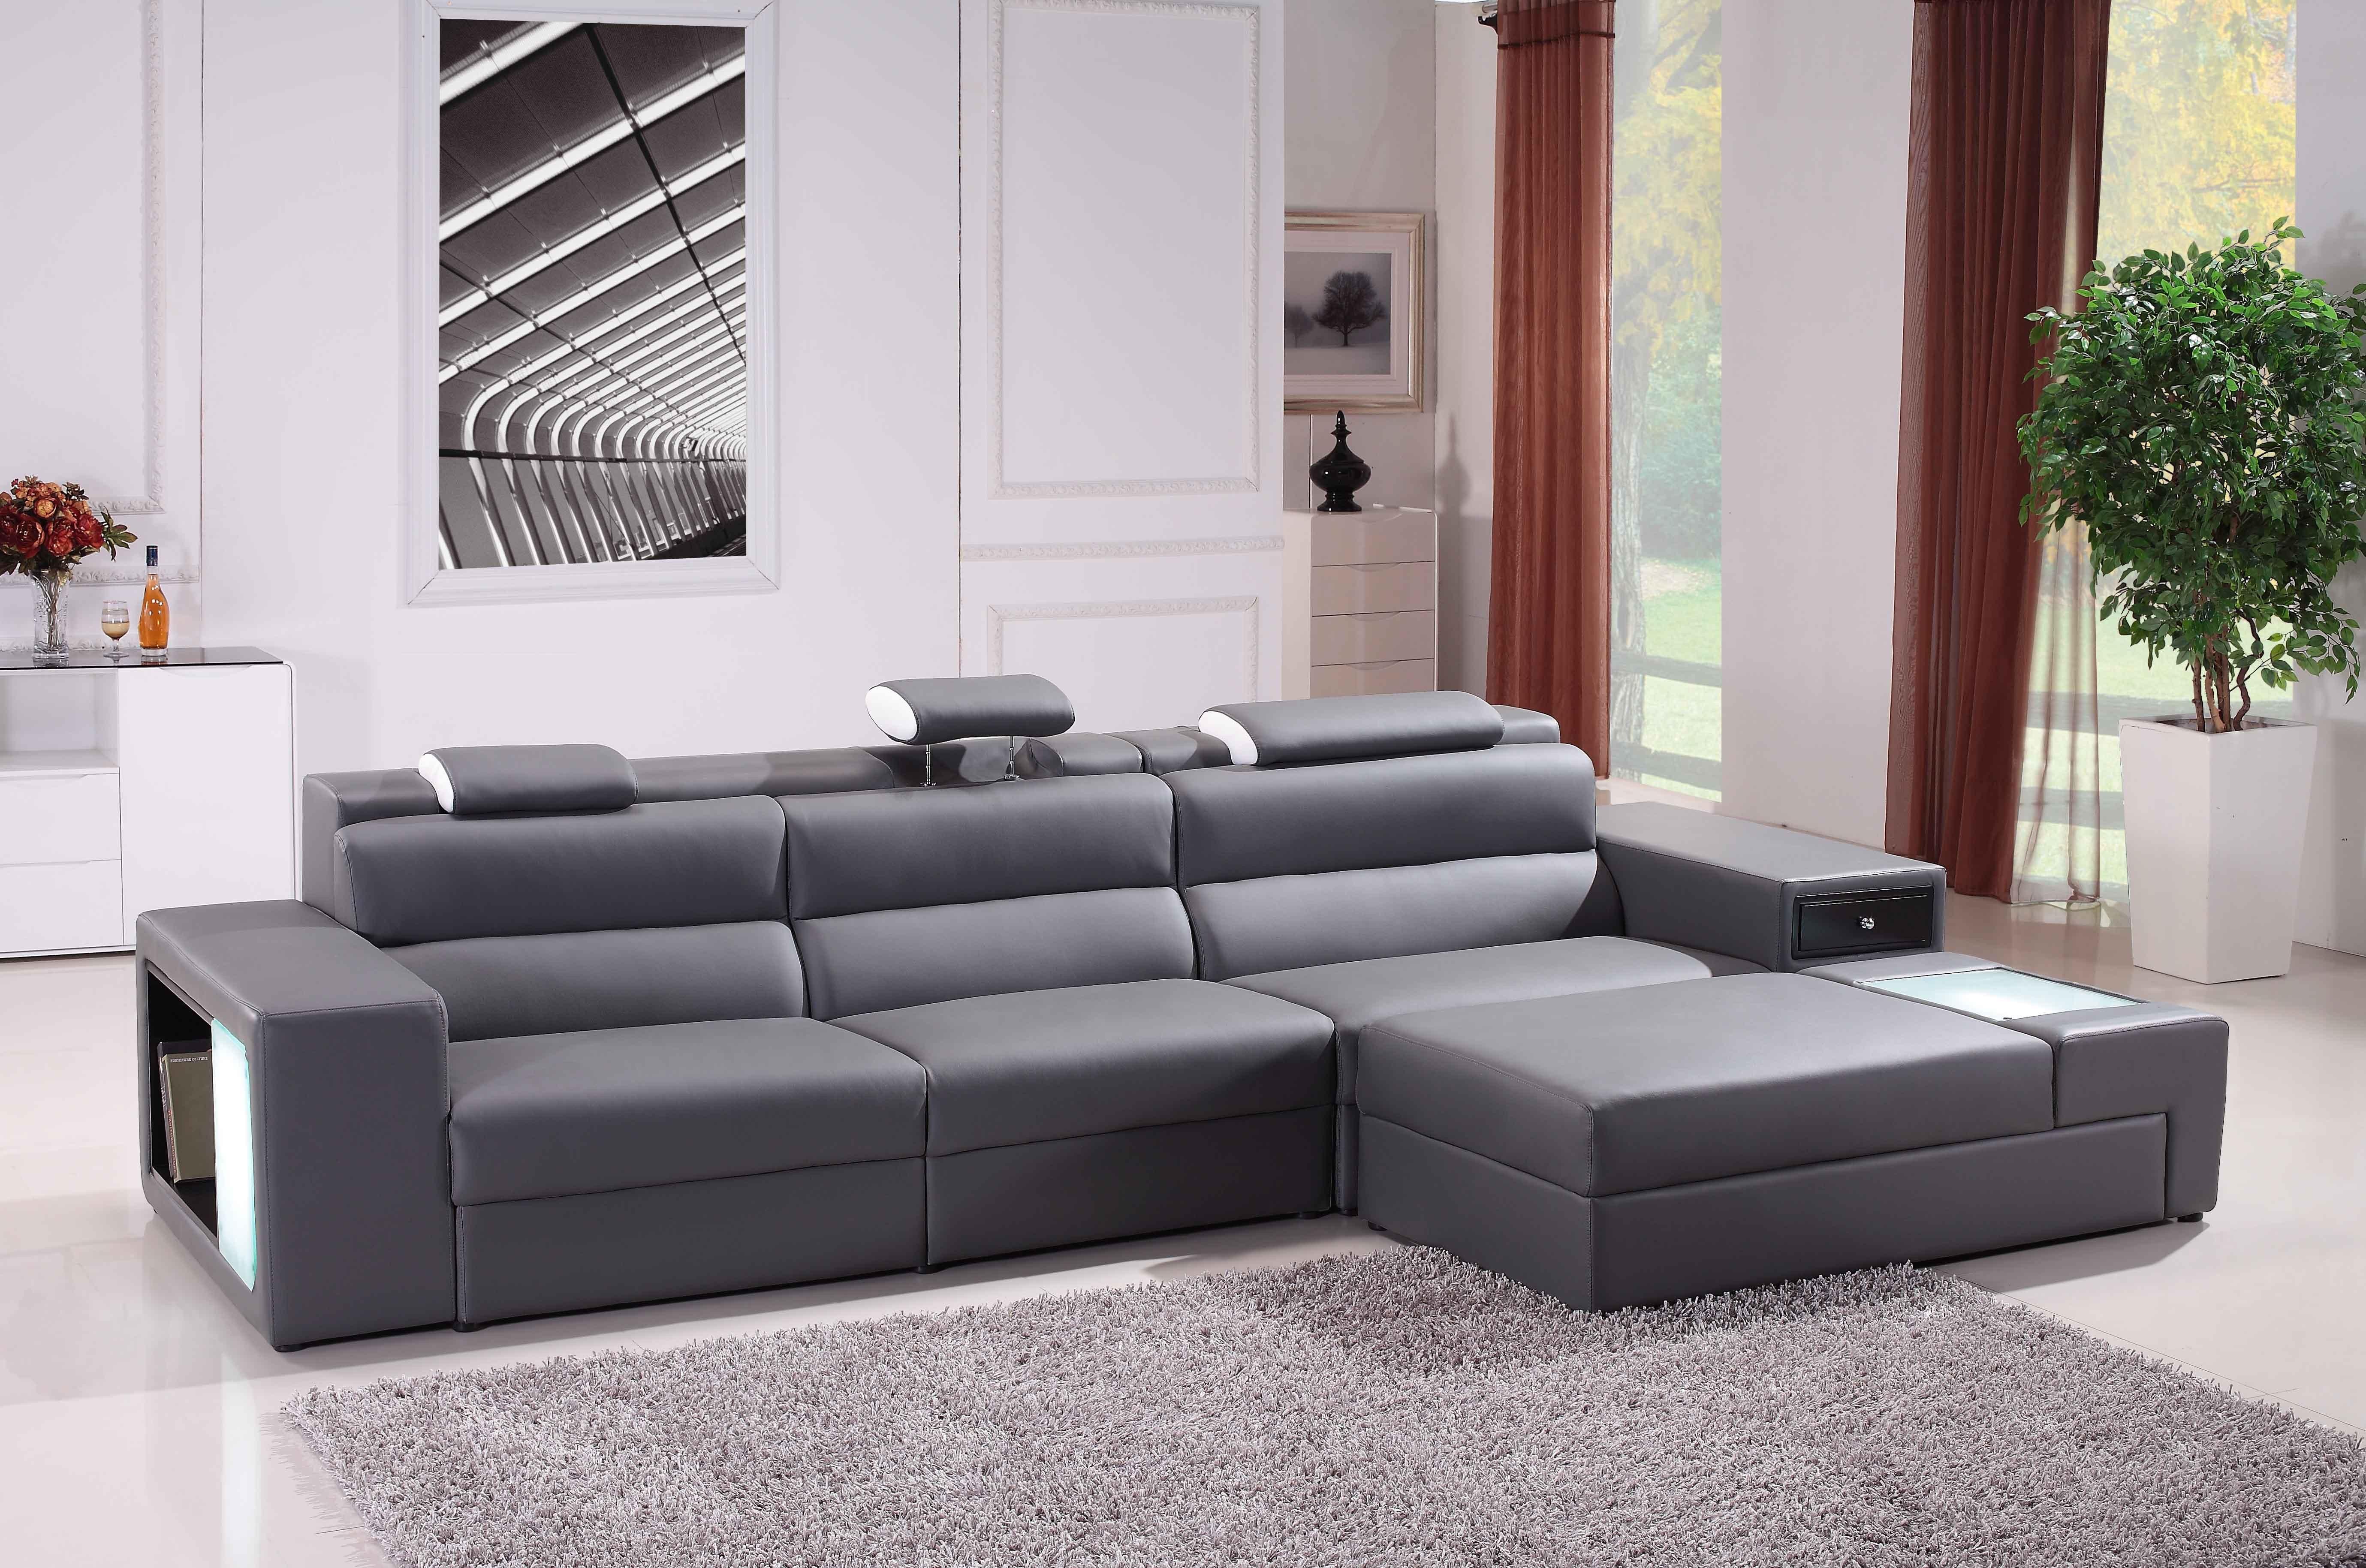 Gray Leather Sleeper Sectional Sofa With Shelf Placed On The White Floor  Plus Gray Fur Rug